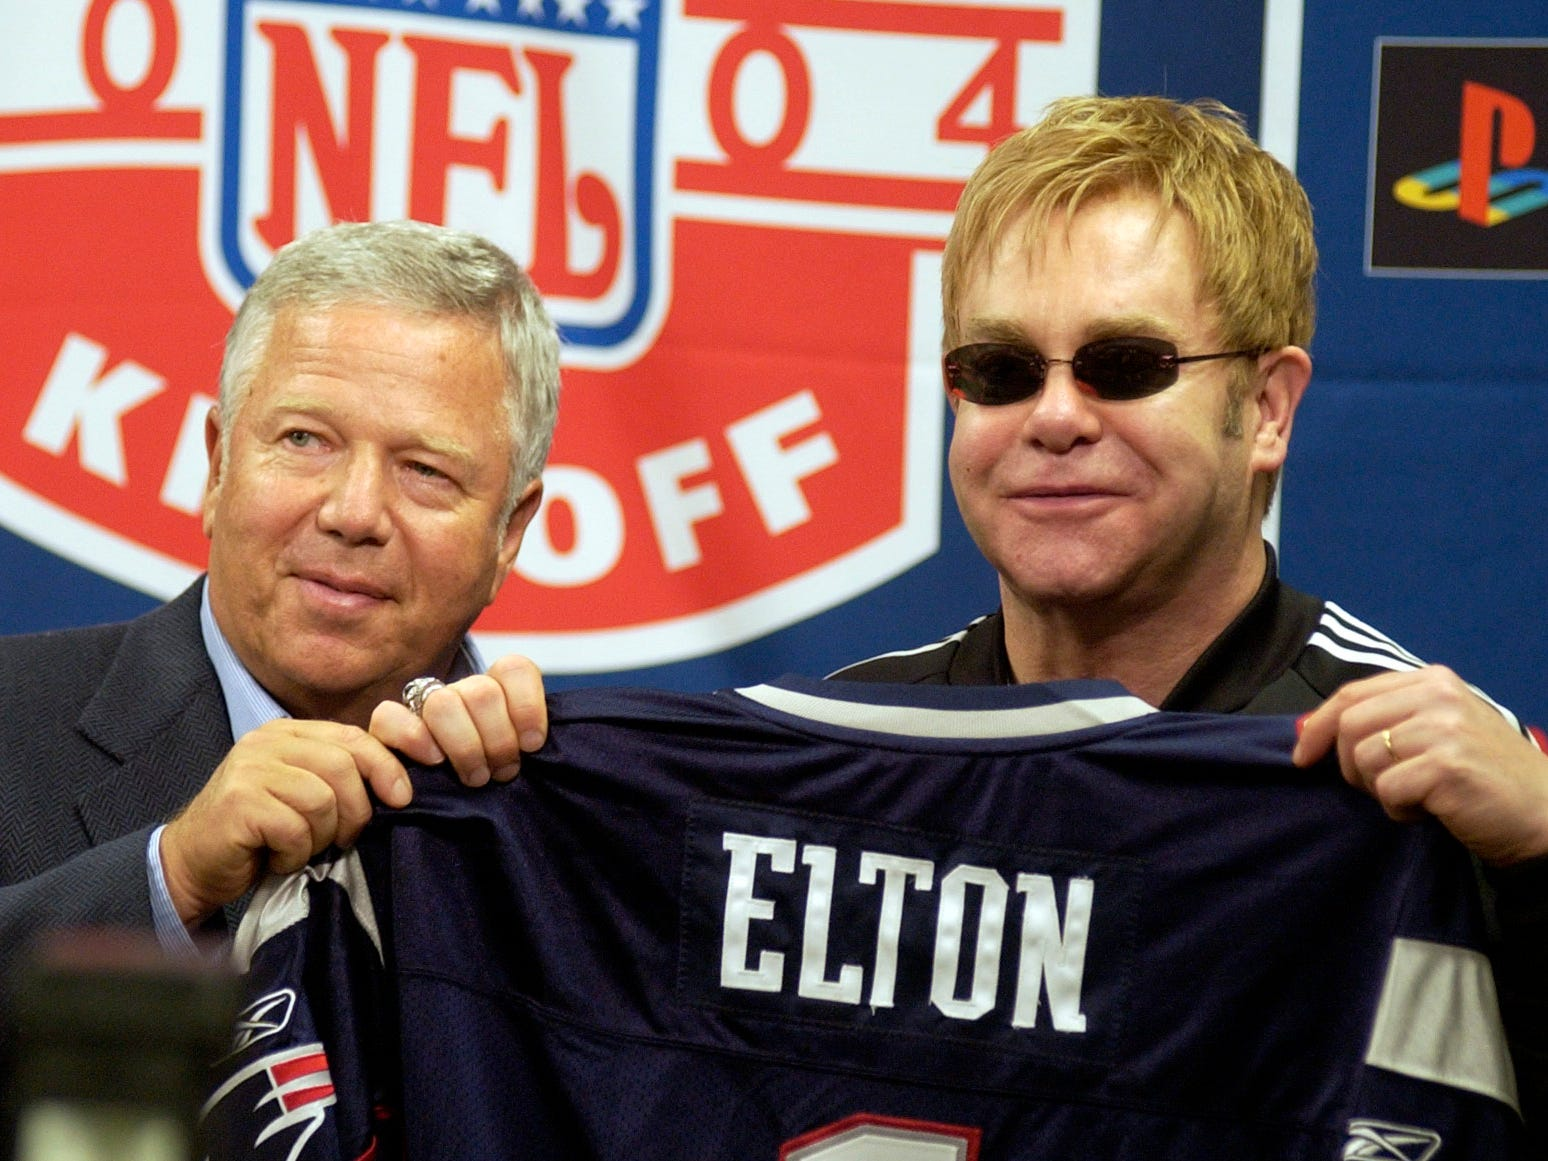 Kraft gives entertainer Elton John a Patriots jersey before the opening day of the 2004 NFL season.